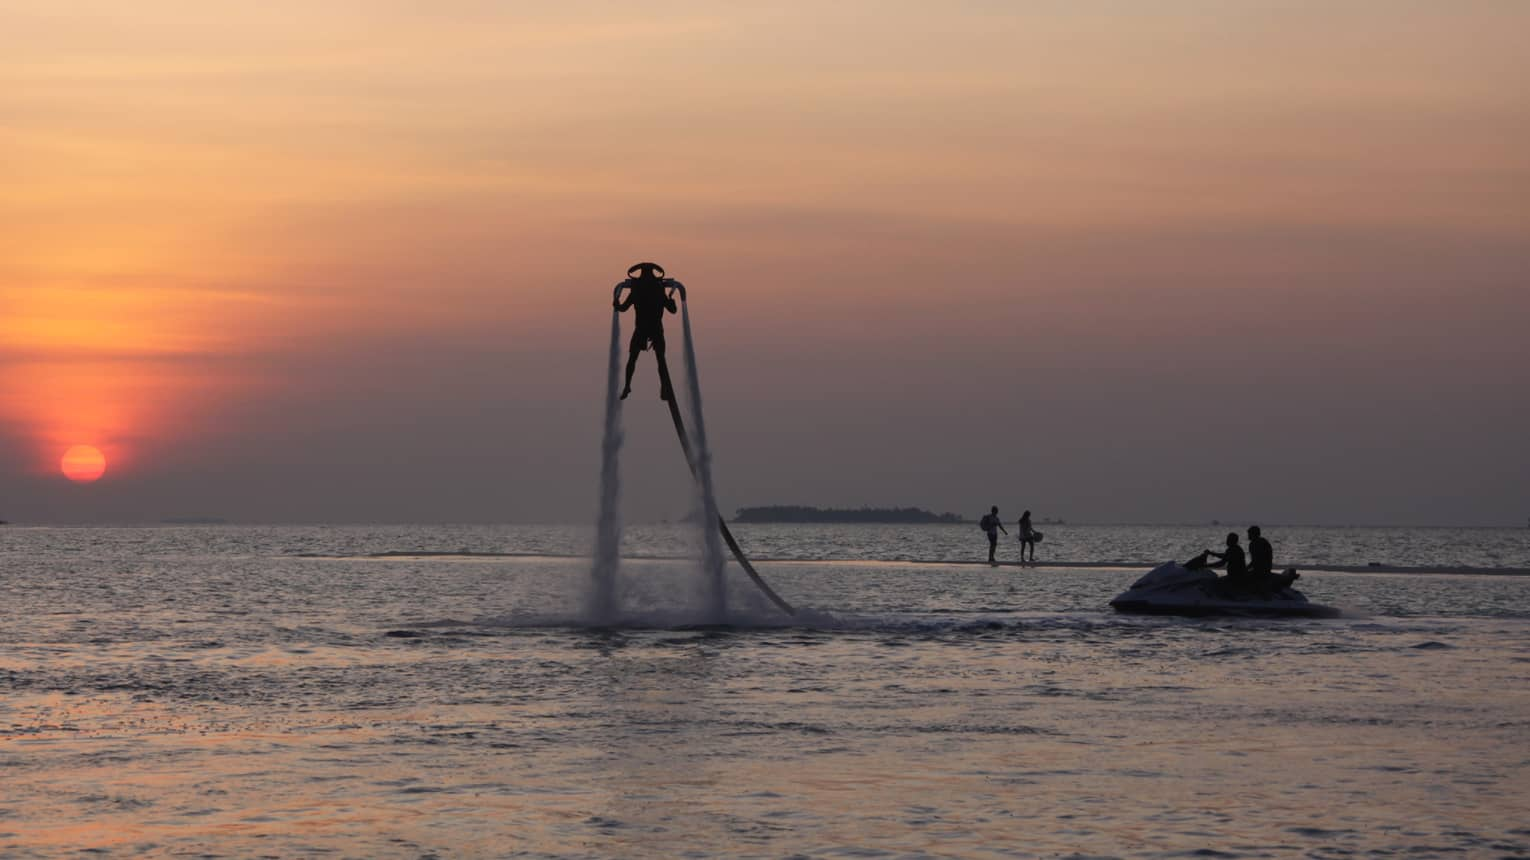 Silhouette of someone with X Jetpack suspended in air over water at sunset